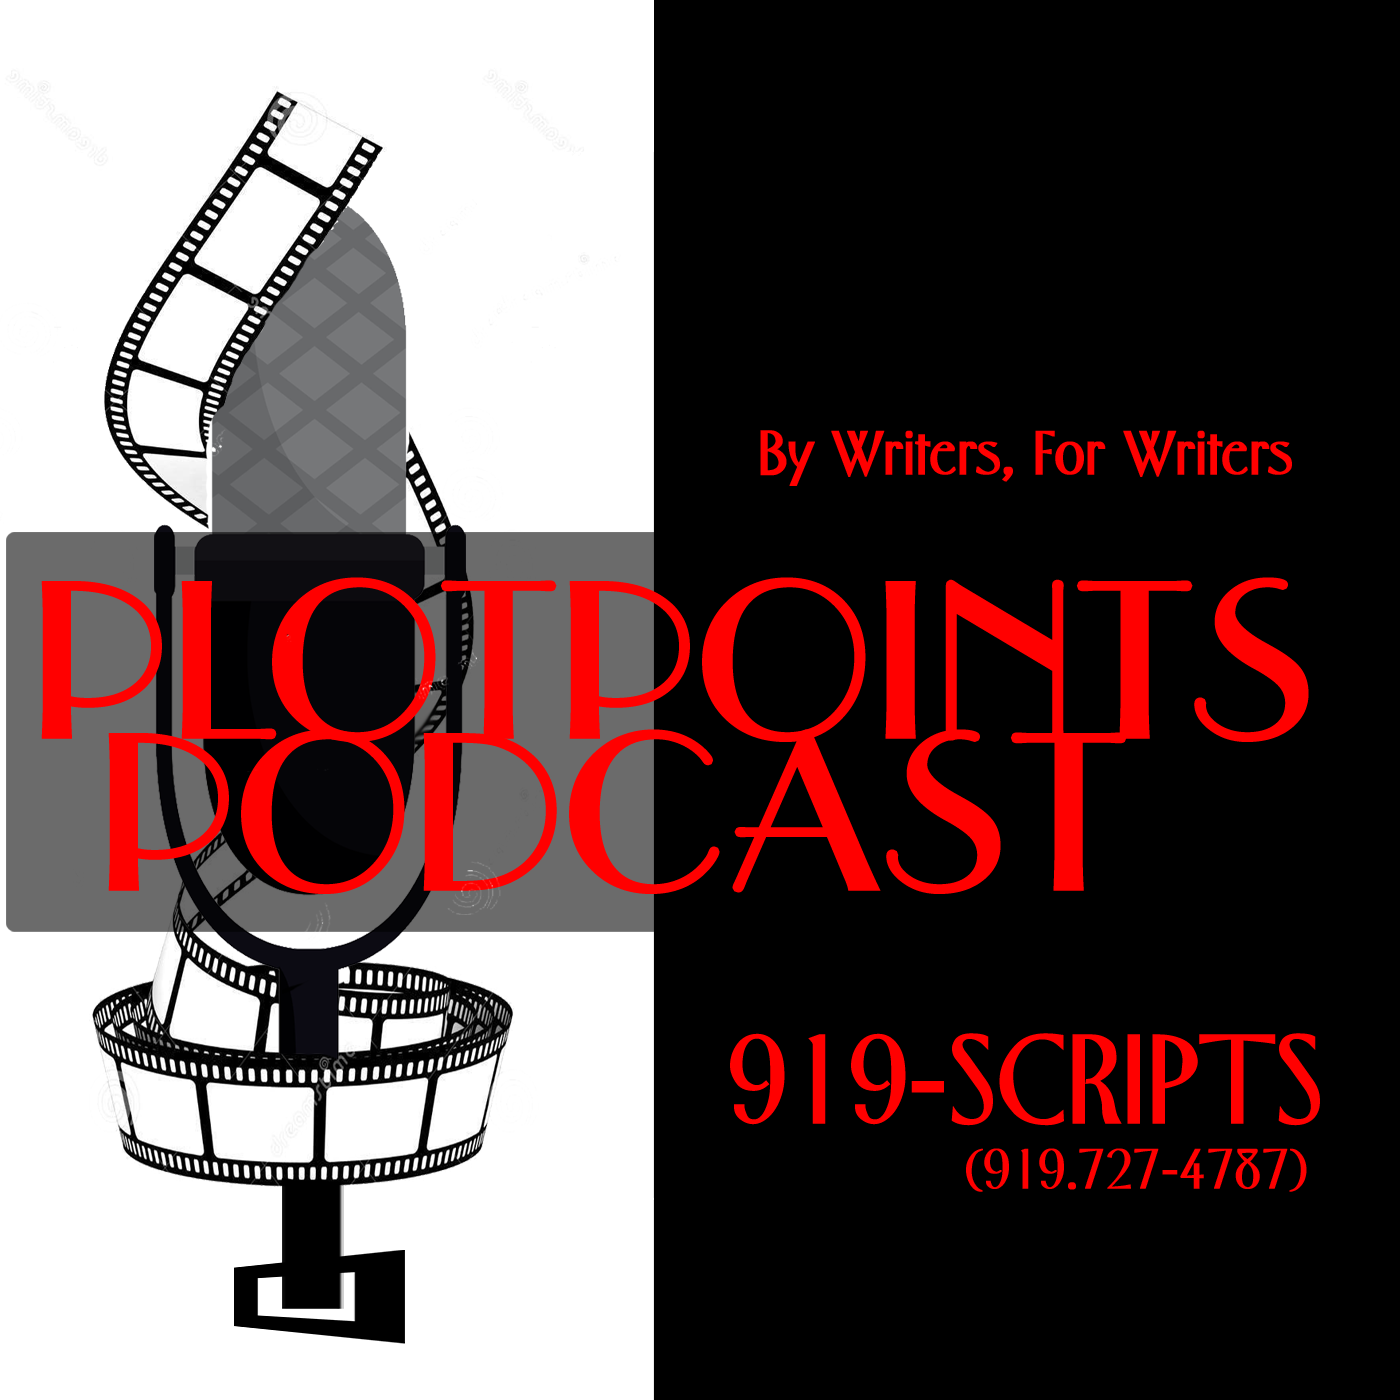 plotpointspodcast